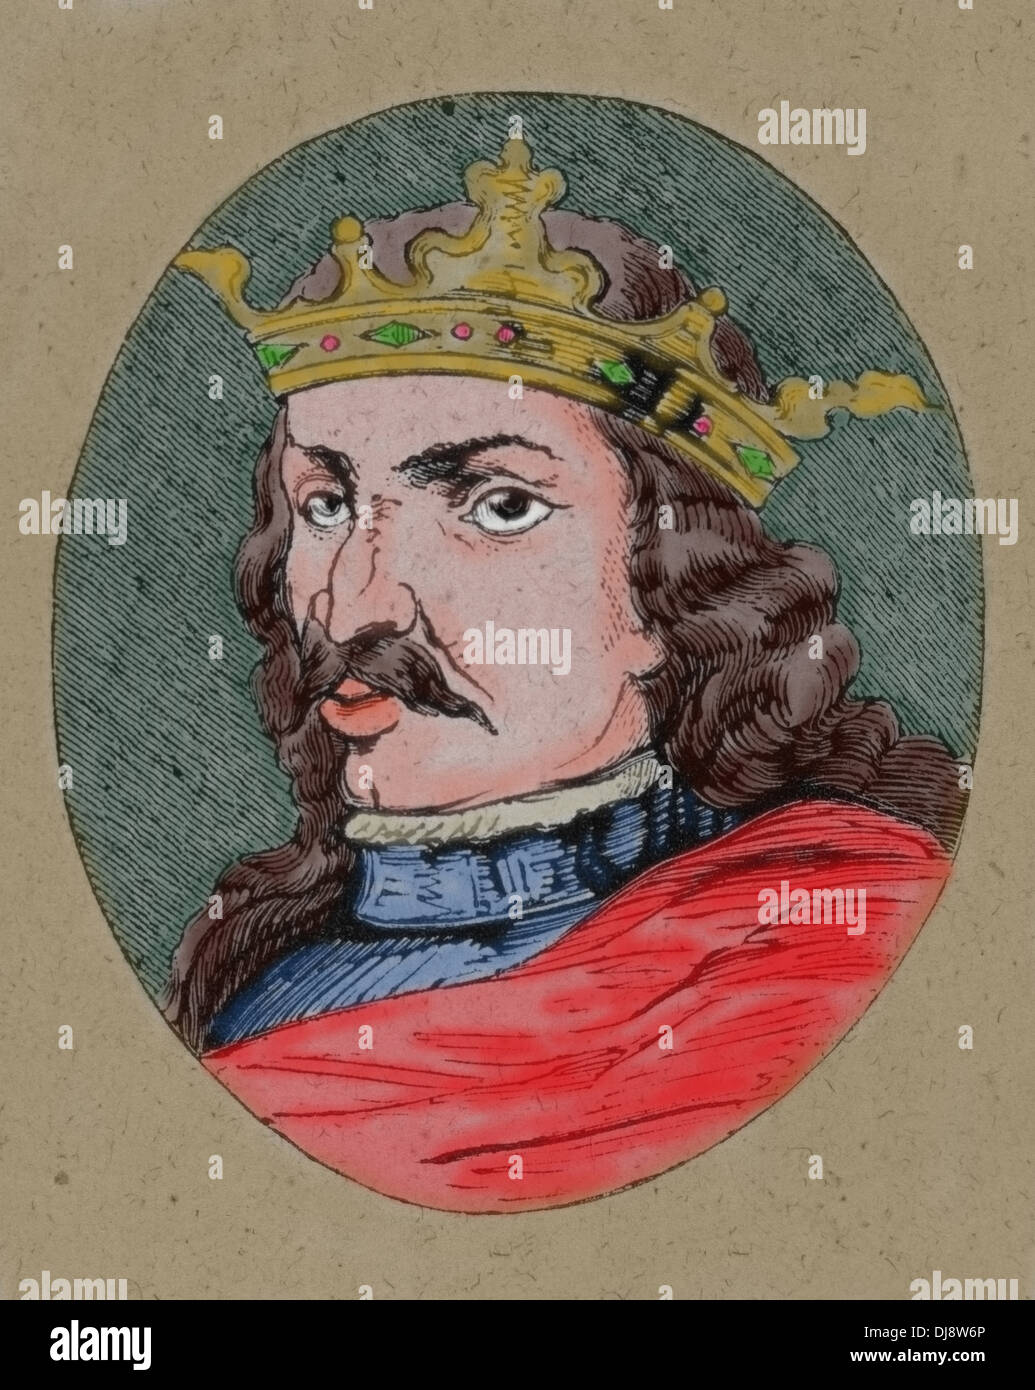 Henry IV of Castile (1425-1474). King of the Crown of Castile. Nicknamed The Impotent. Colored engraving. - Stock Image